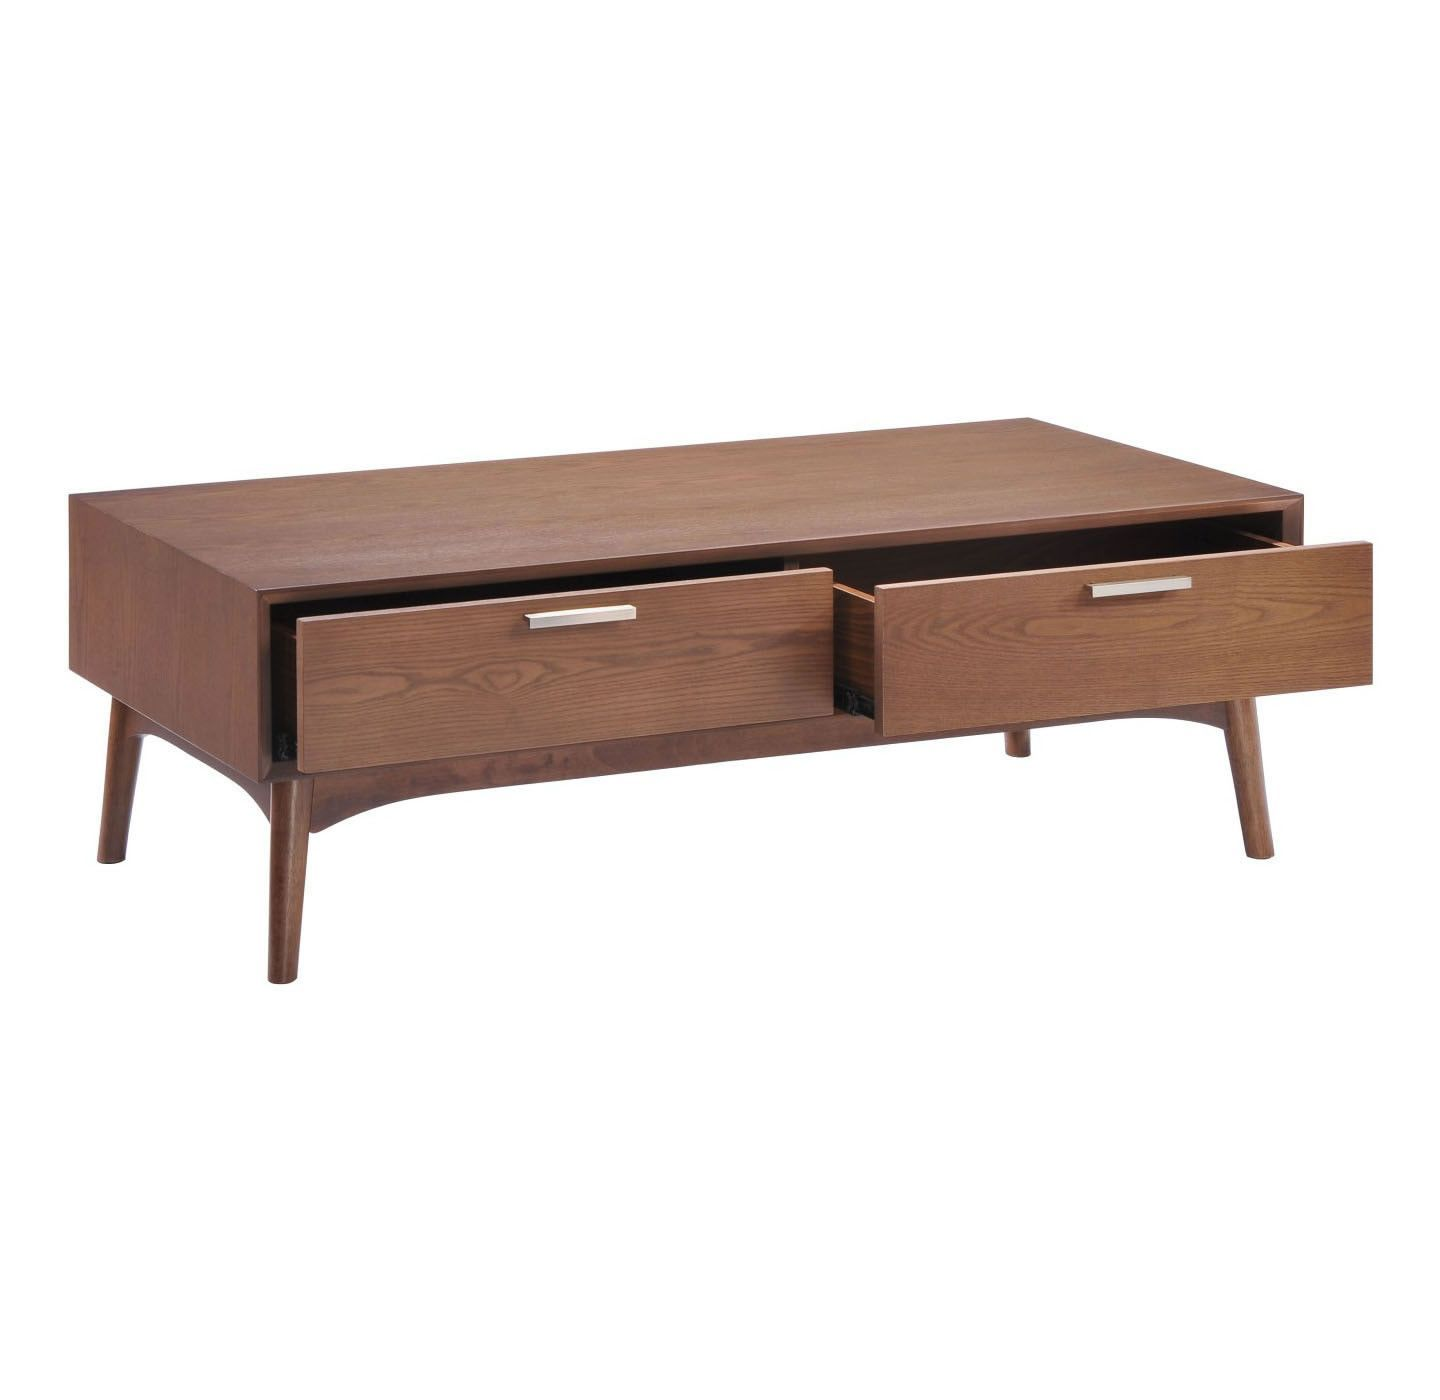 Lovely Crafted Mid-Century Modern Tila Coffee Table